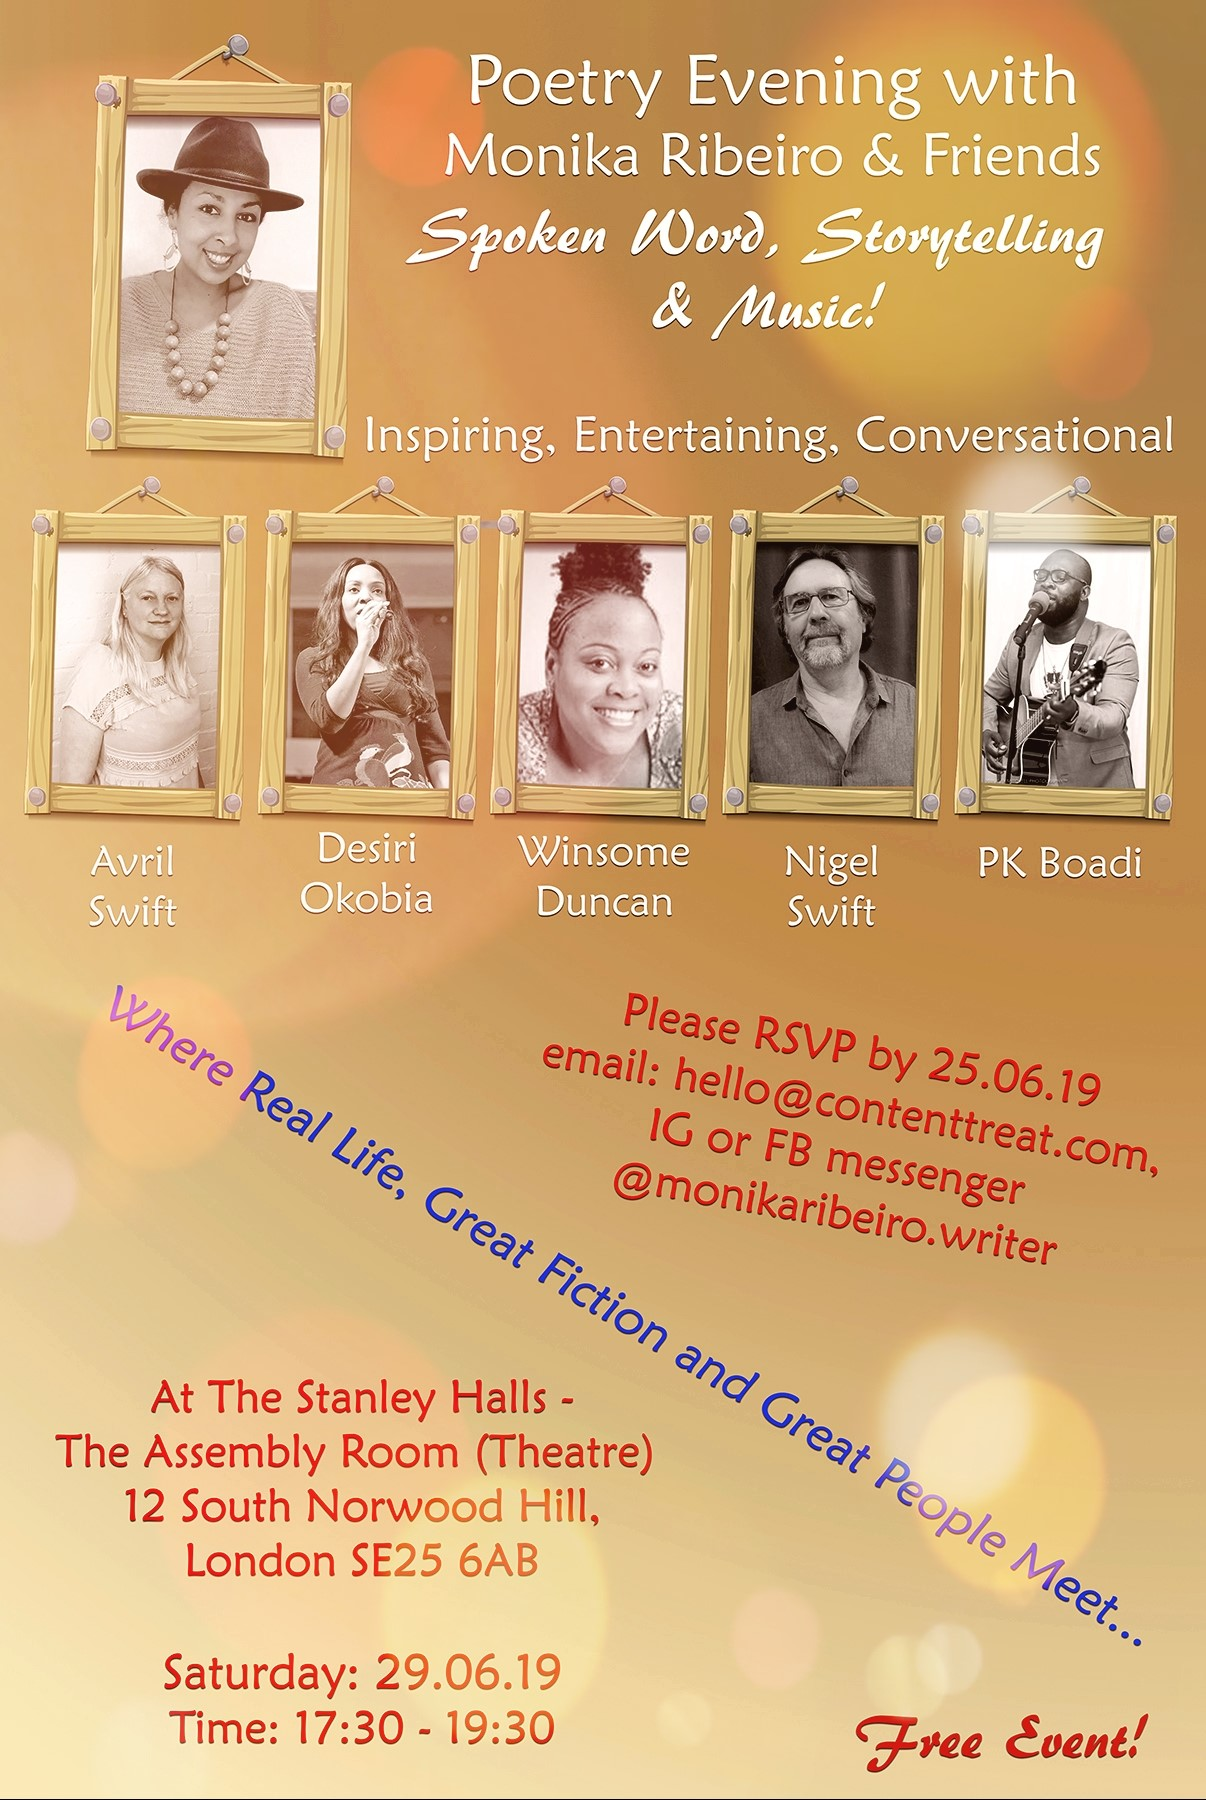 POETRY EVENING WITH MONIKA RIBEIRO & FRIENDS banner image